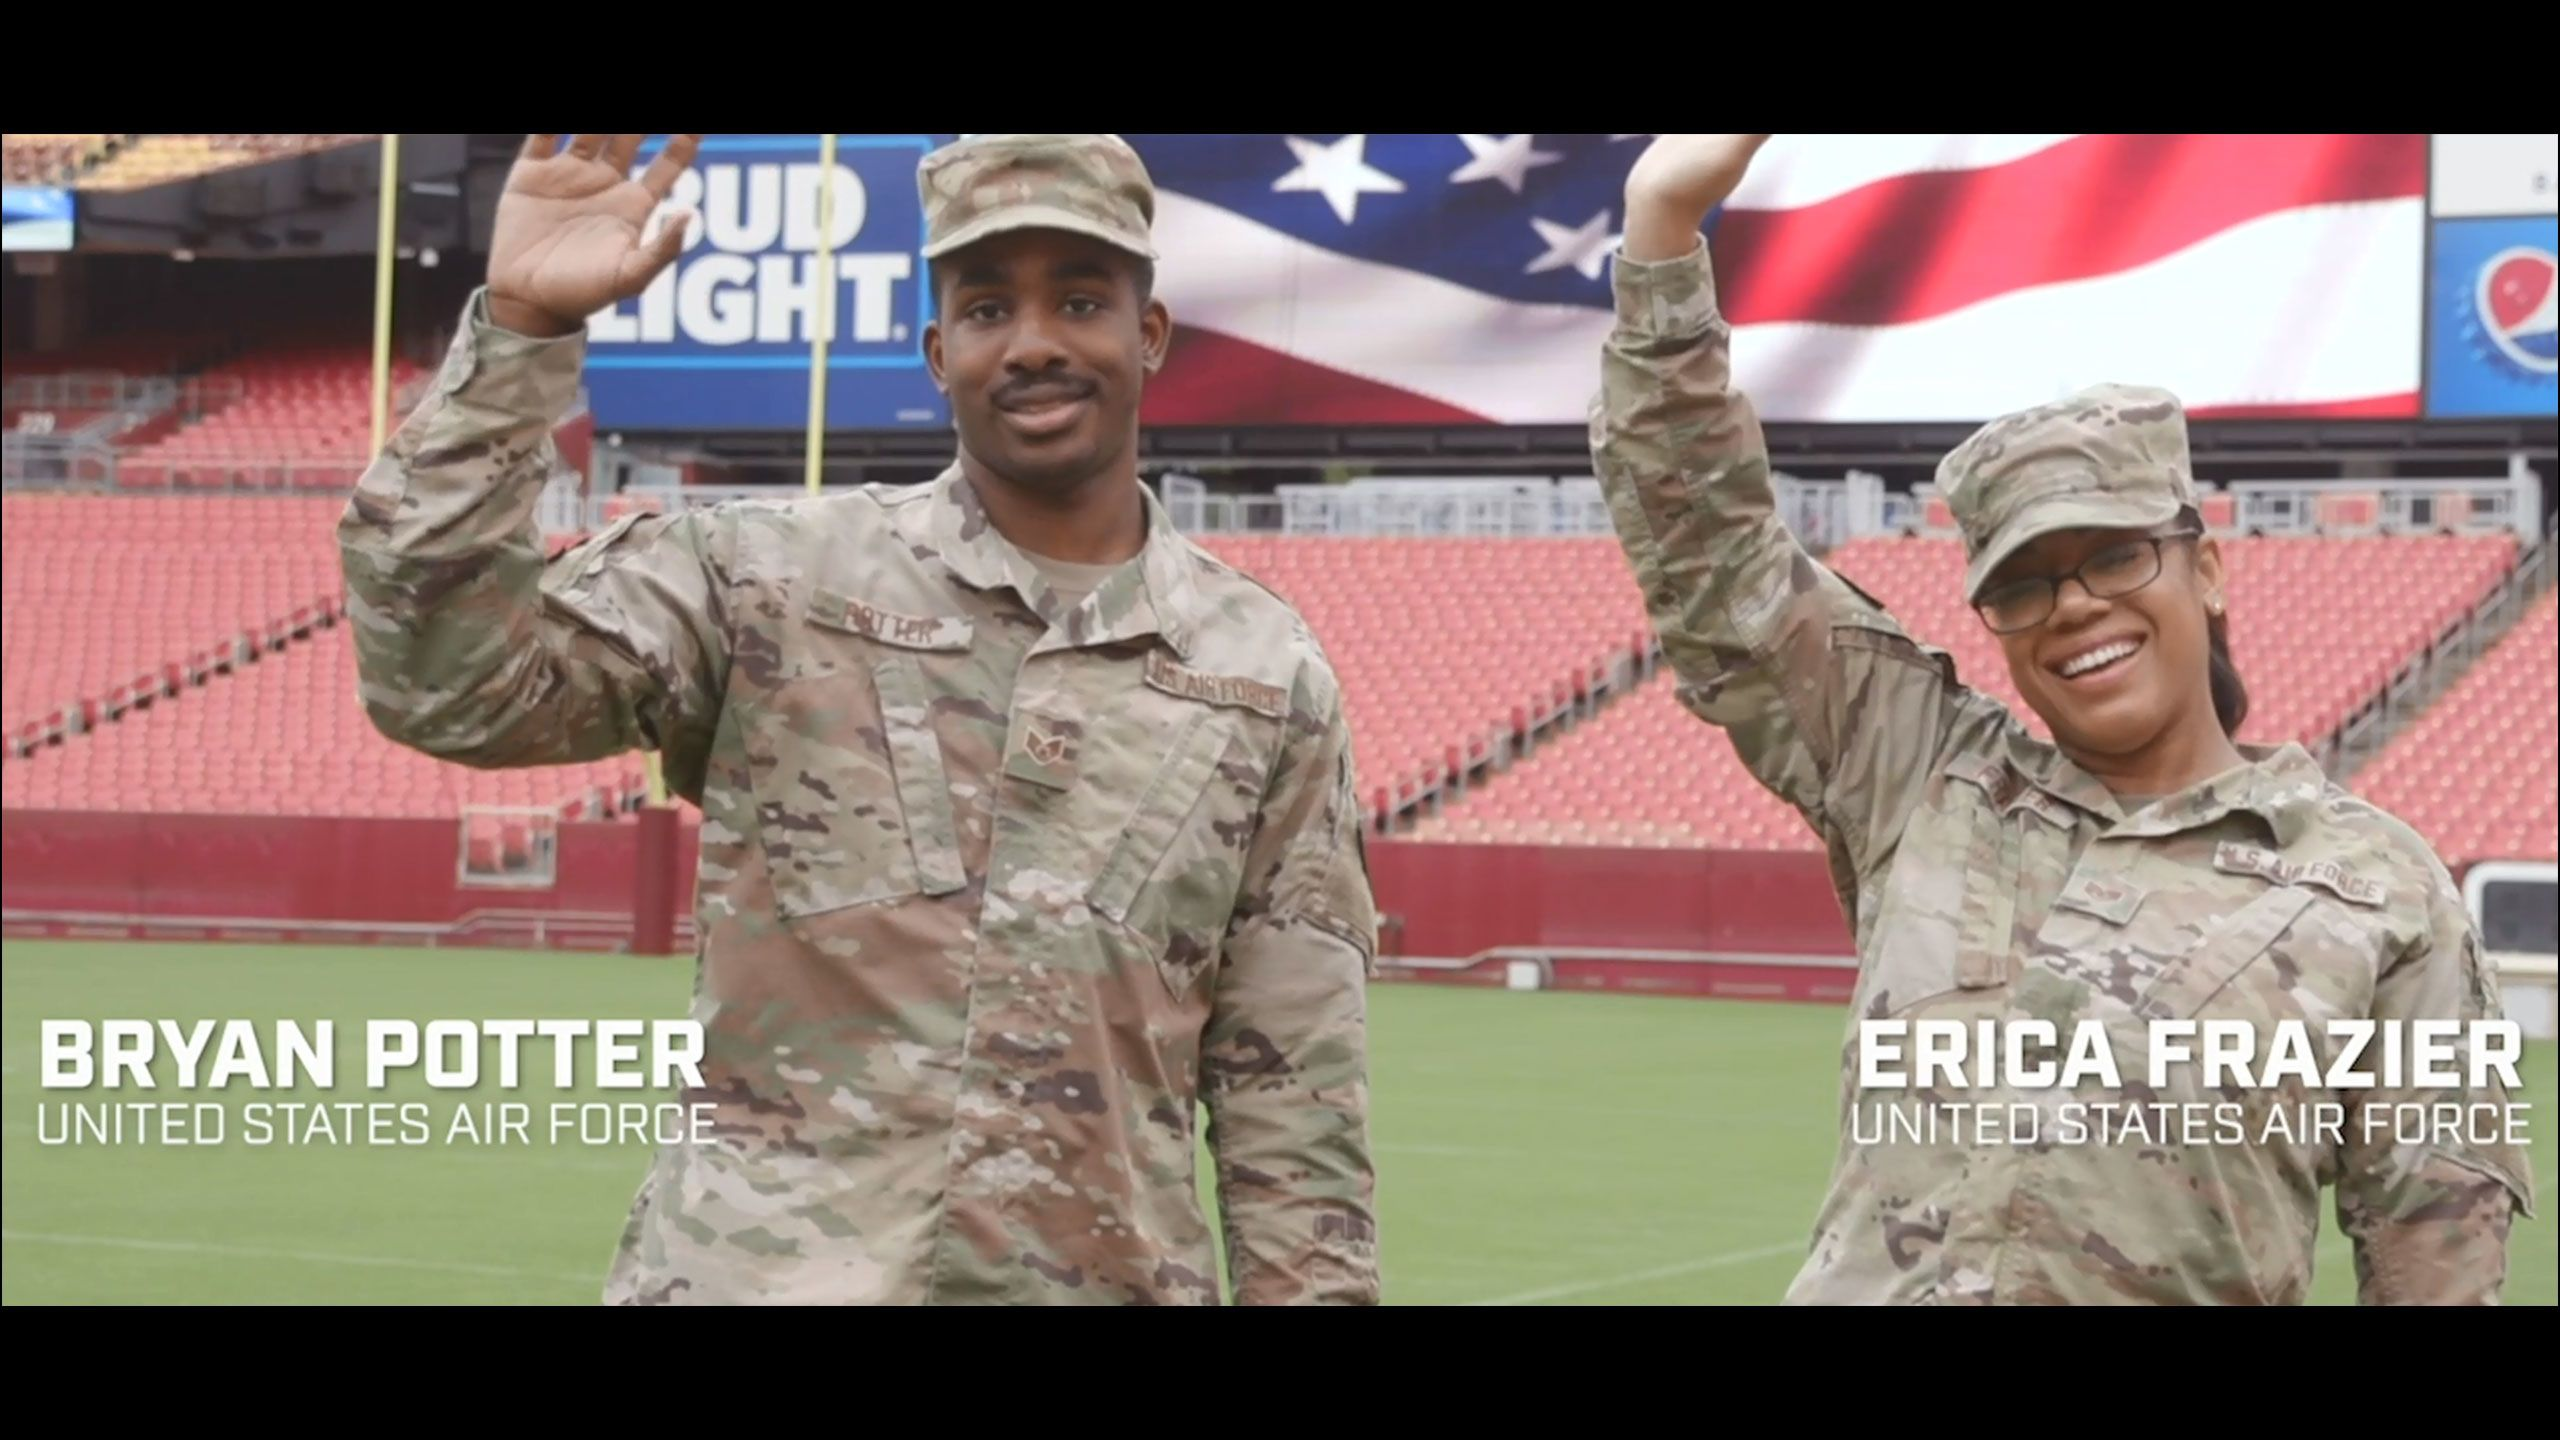 Staff Sergeant's Erica Frazier and Bryan Potter